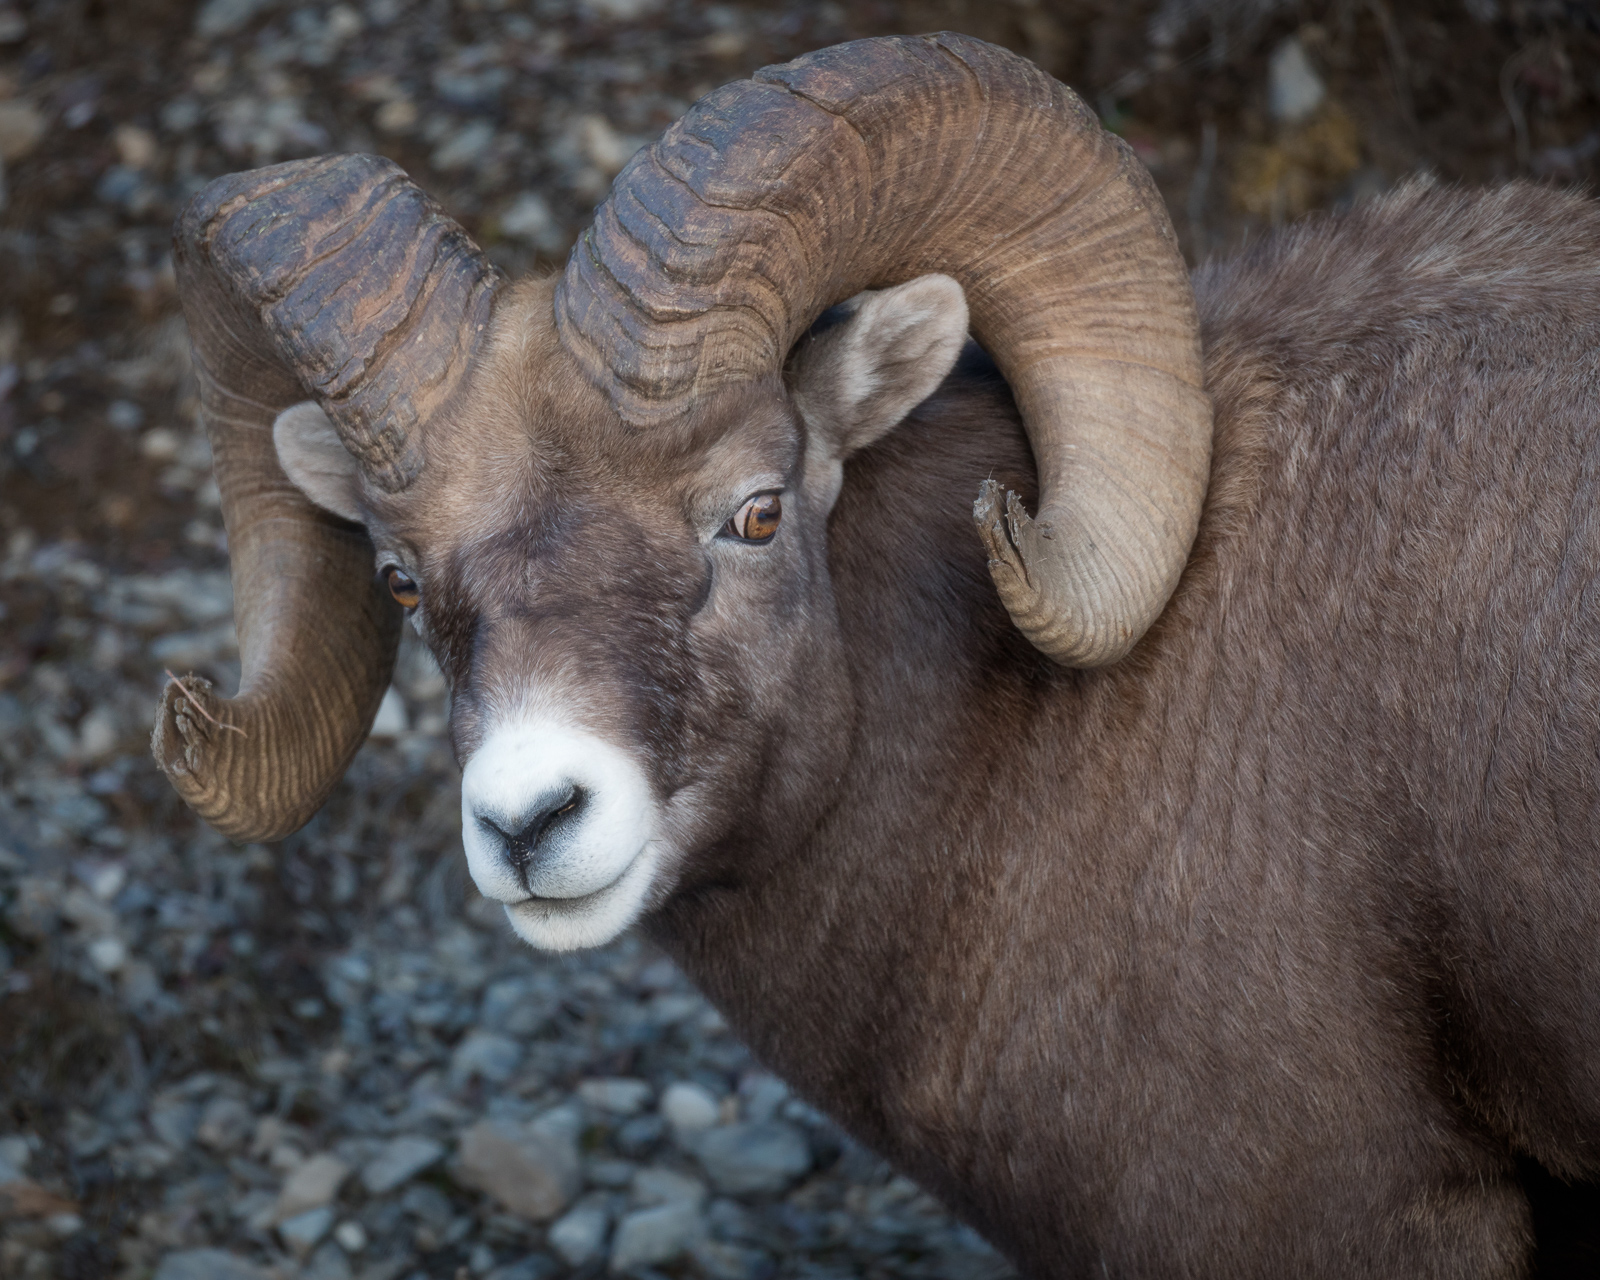 alberta,canada,close-up,icefields parkway,jasper national park,mammal,north america,ram,wildlife, photo